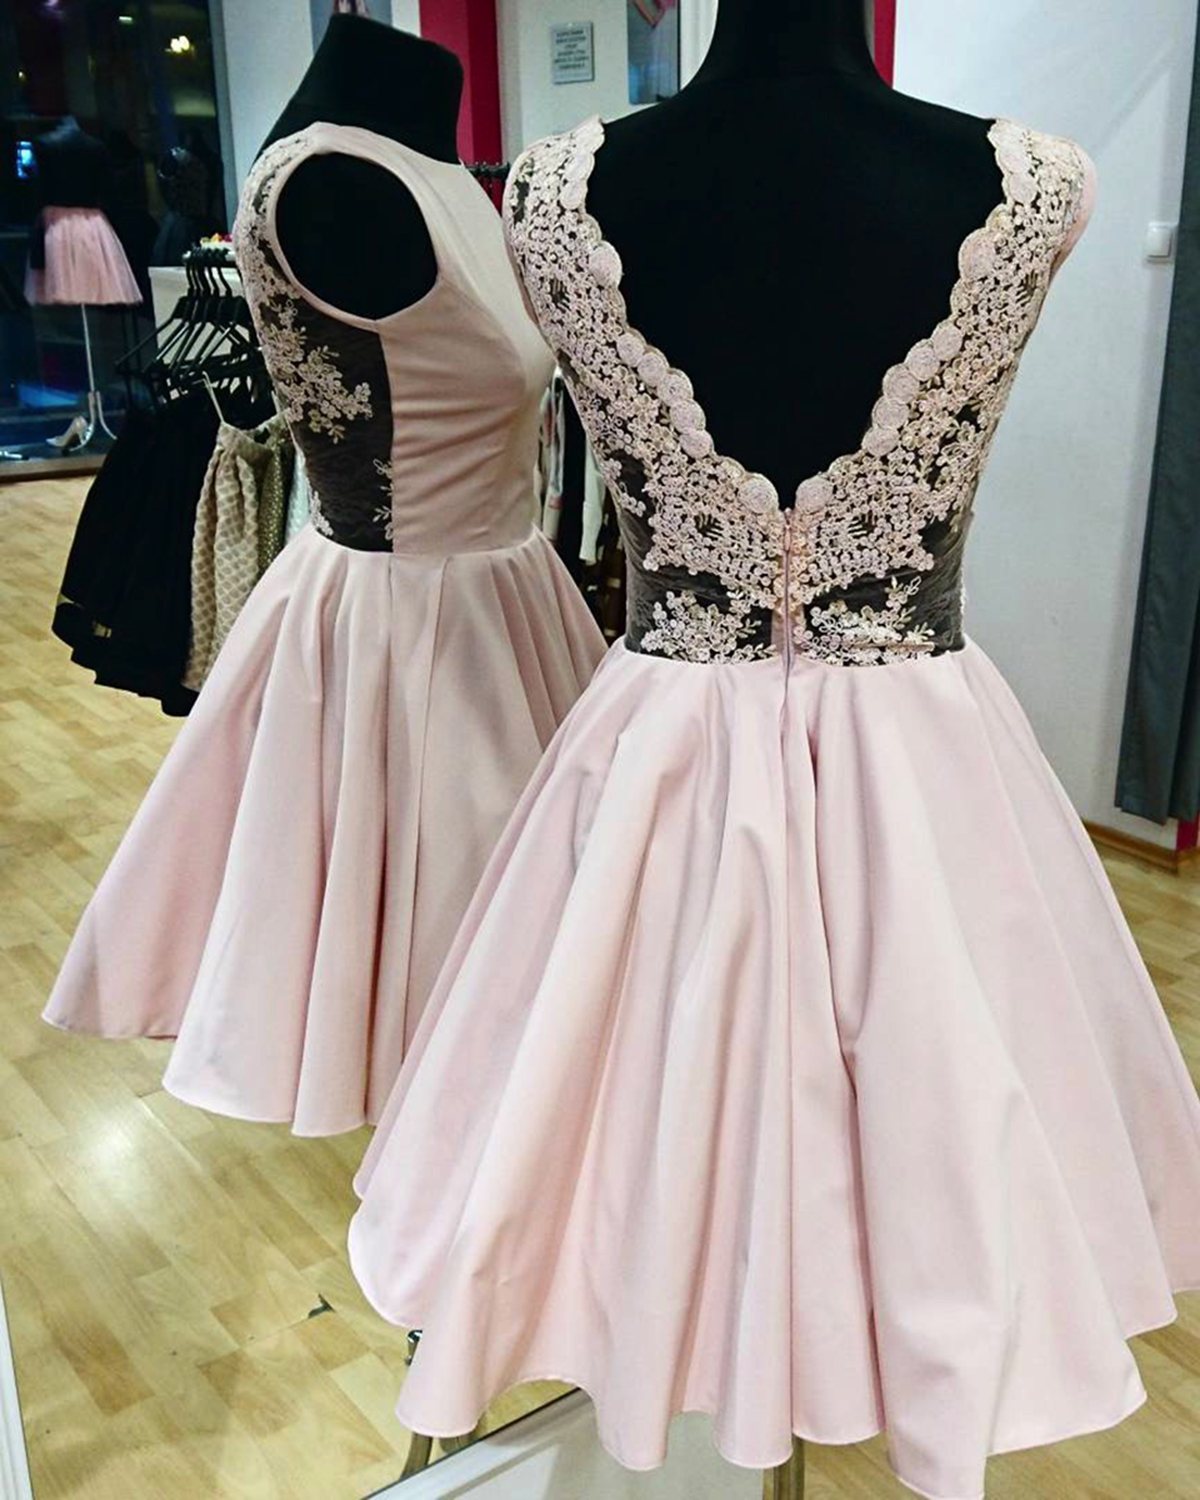 Cute pink satin v back short homecoming dress mini lace cute pink satin v back short homecoming dress mini lace bridesmaid dresses ombrellifo Gallery